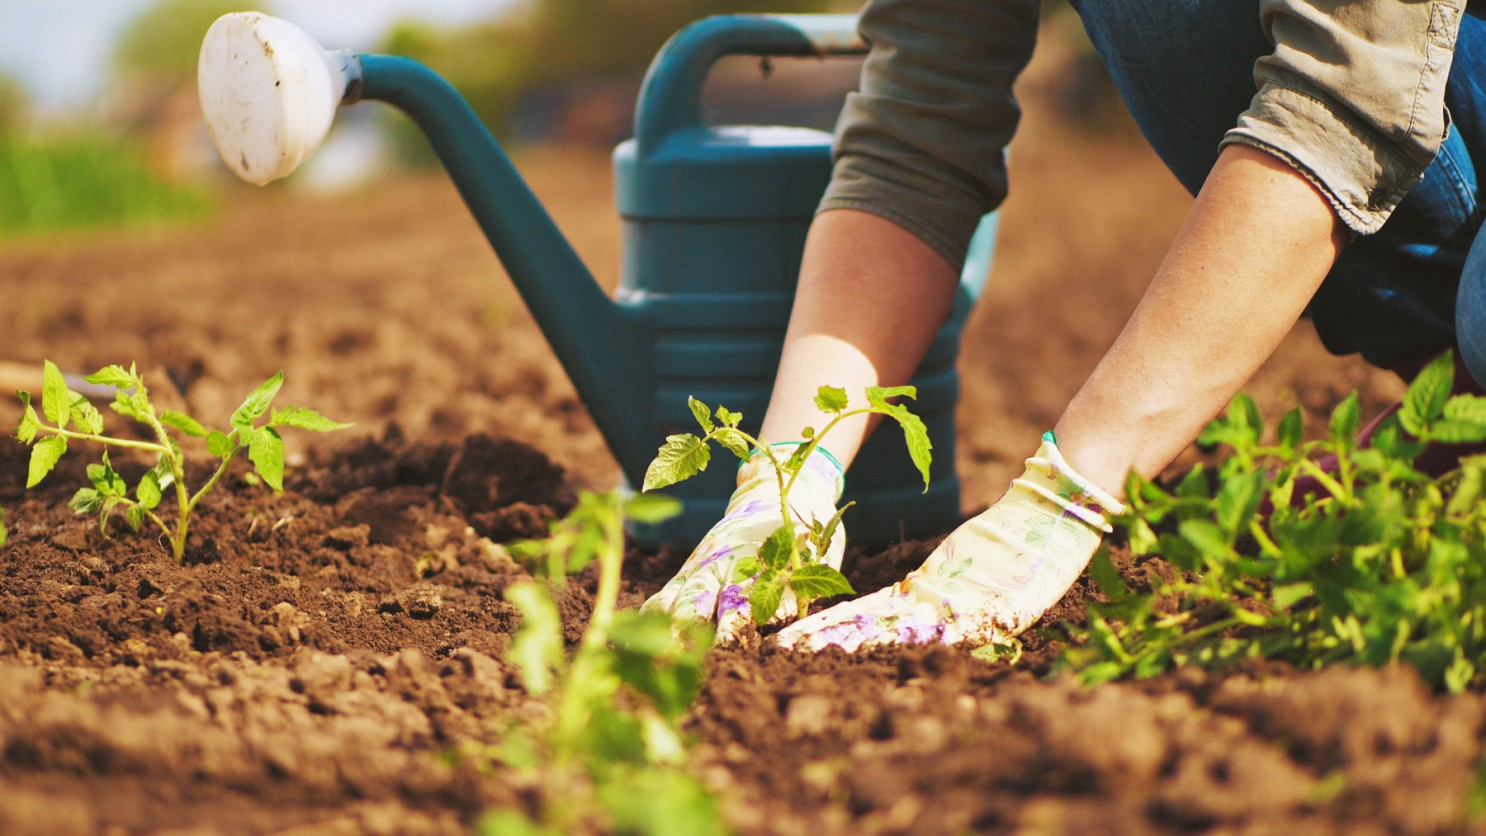 71 Astonishing Gardening Quotes By Famous People | Vilee